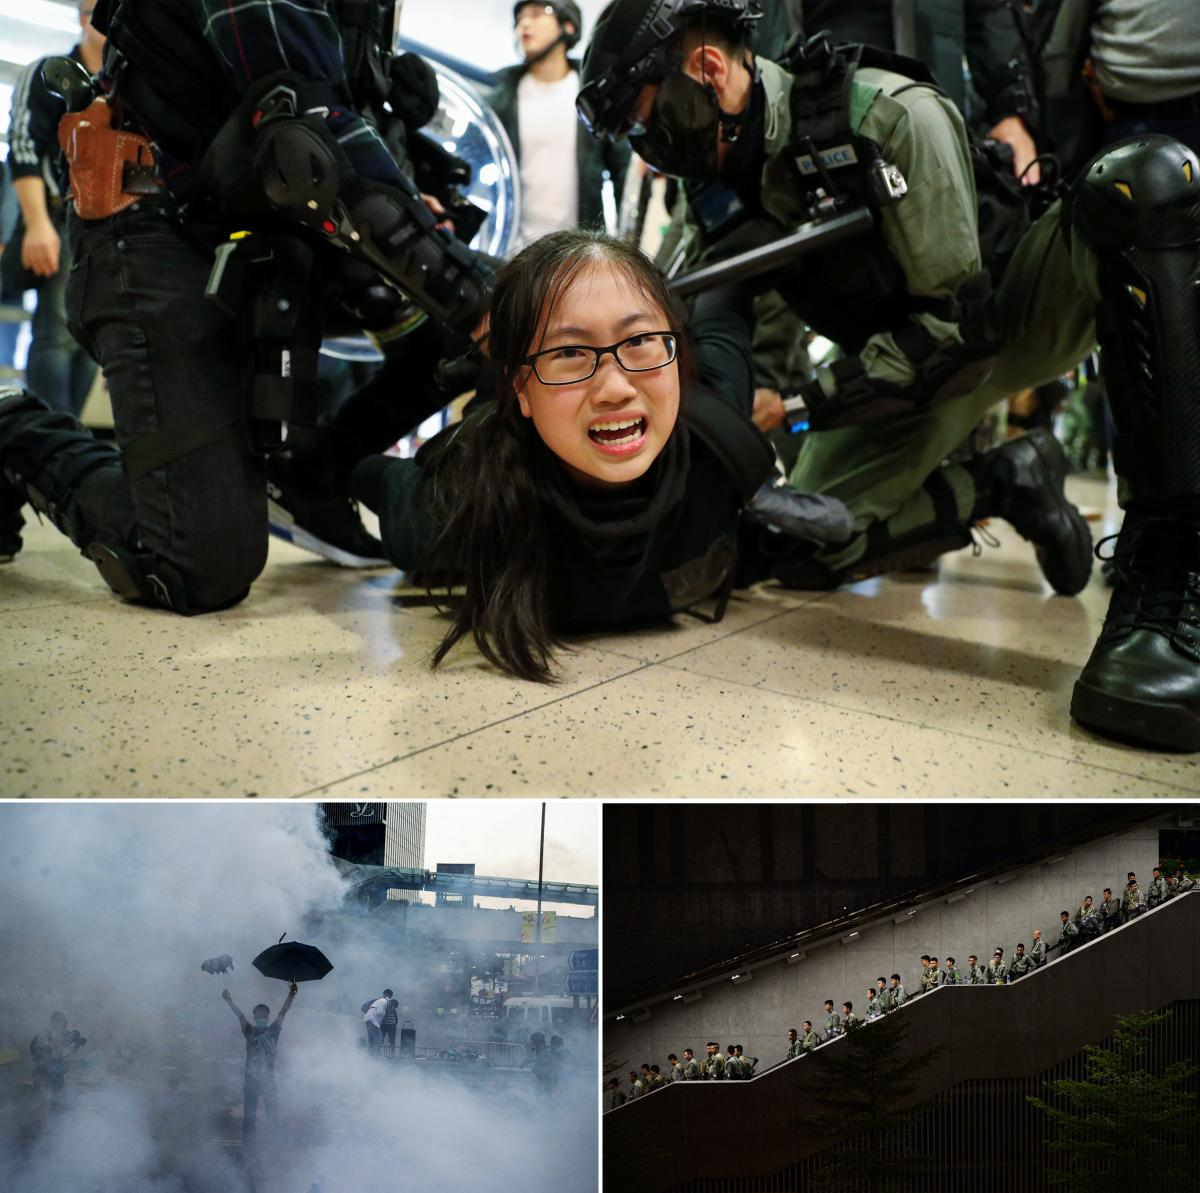 Top: Police officers detain an anti-government protester in Hong Kong in December 2019. Left: Police fire tear gas toward protesters, who are using umbrellas for protection near Hong Kong government headquarters in September 2014. Right: Hong Kong police